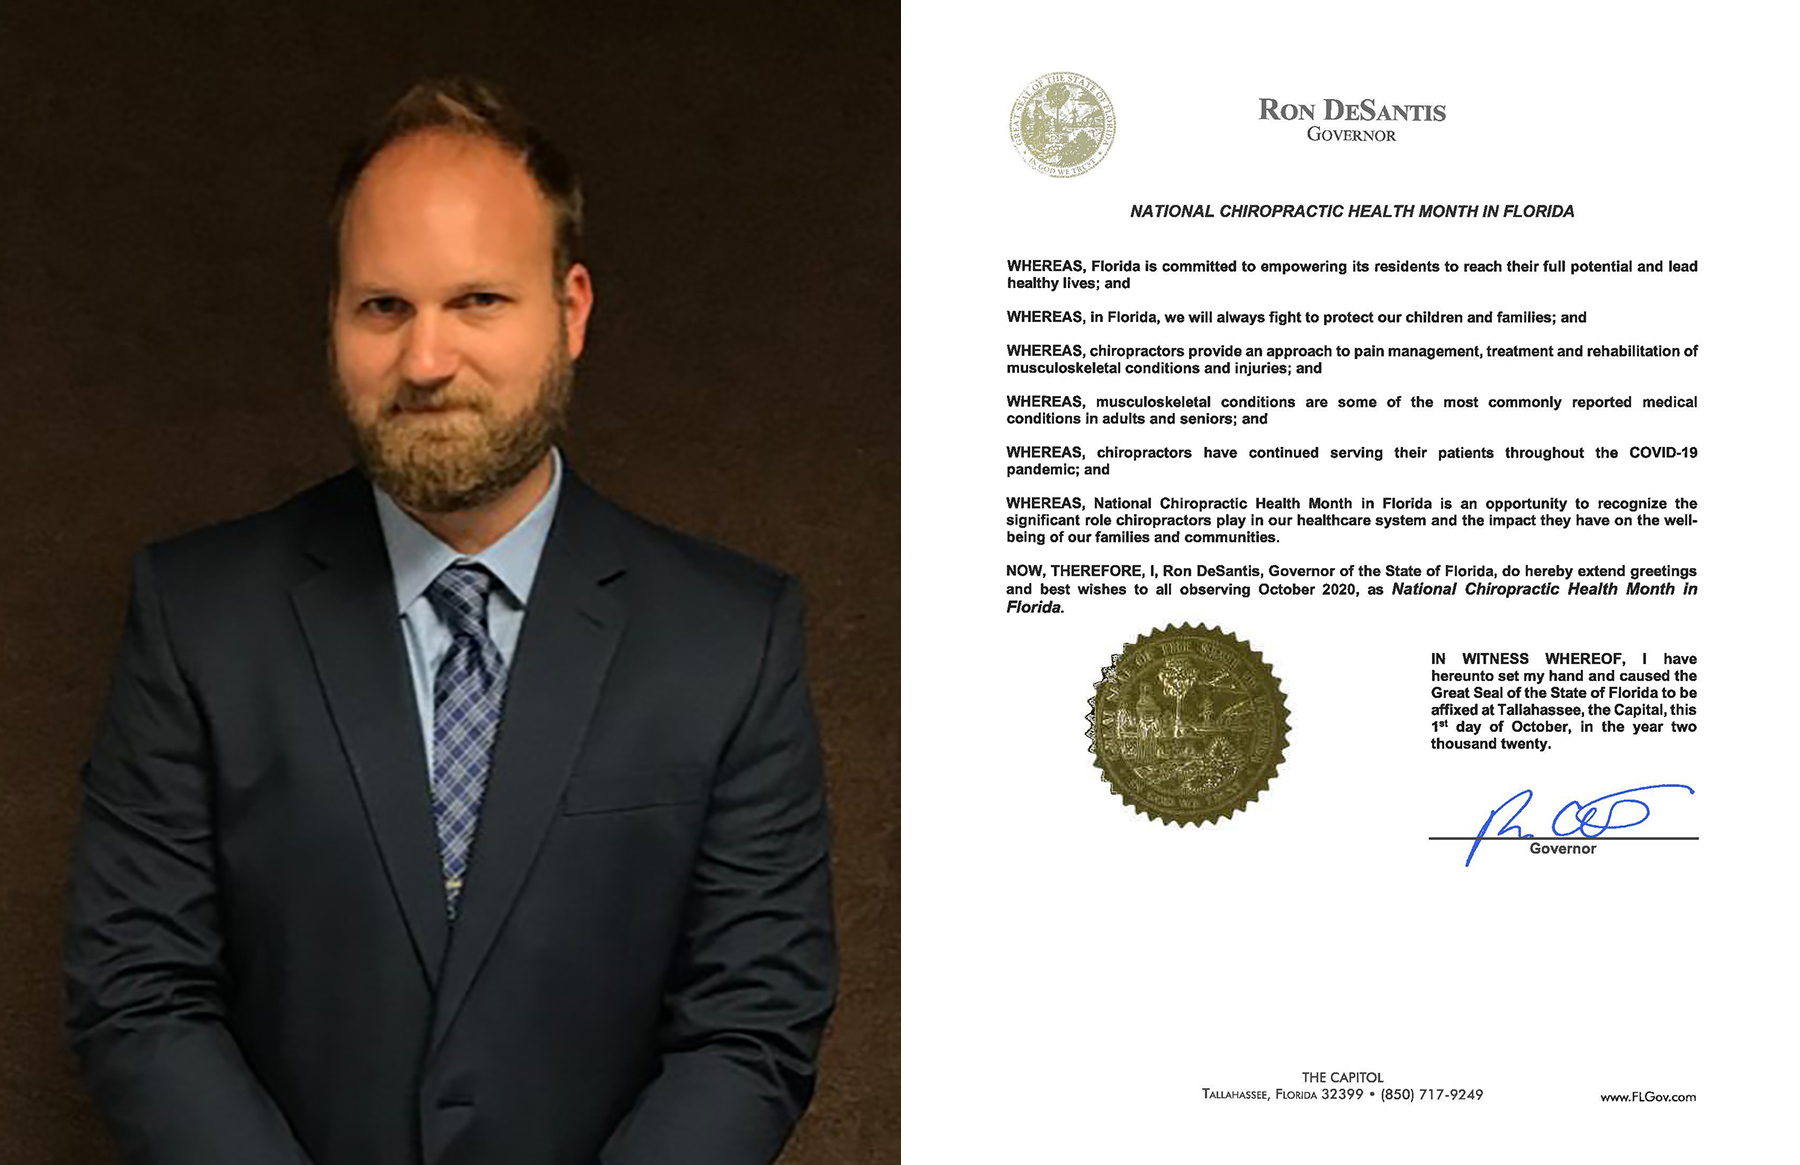 Keiser University College of Chiropractic Medicine Graduate Obtains Gubernatorial Proclamation